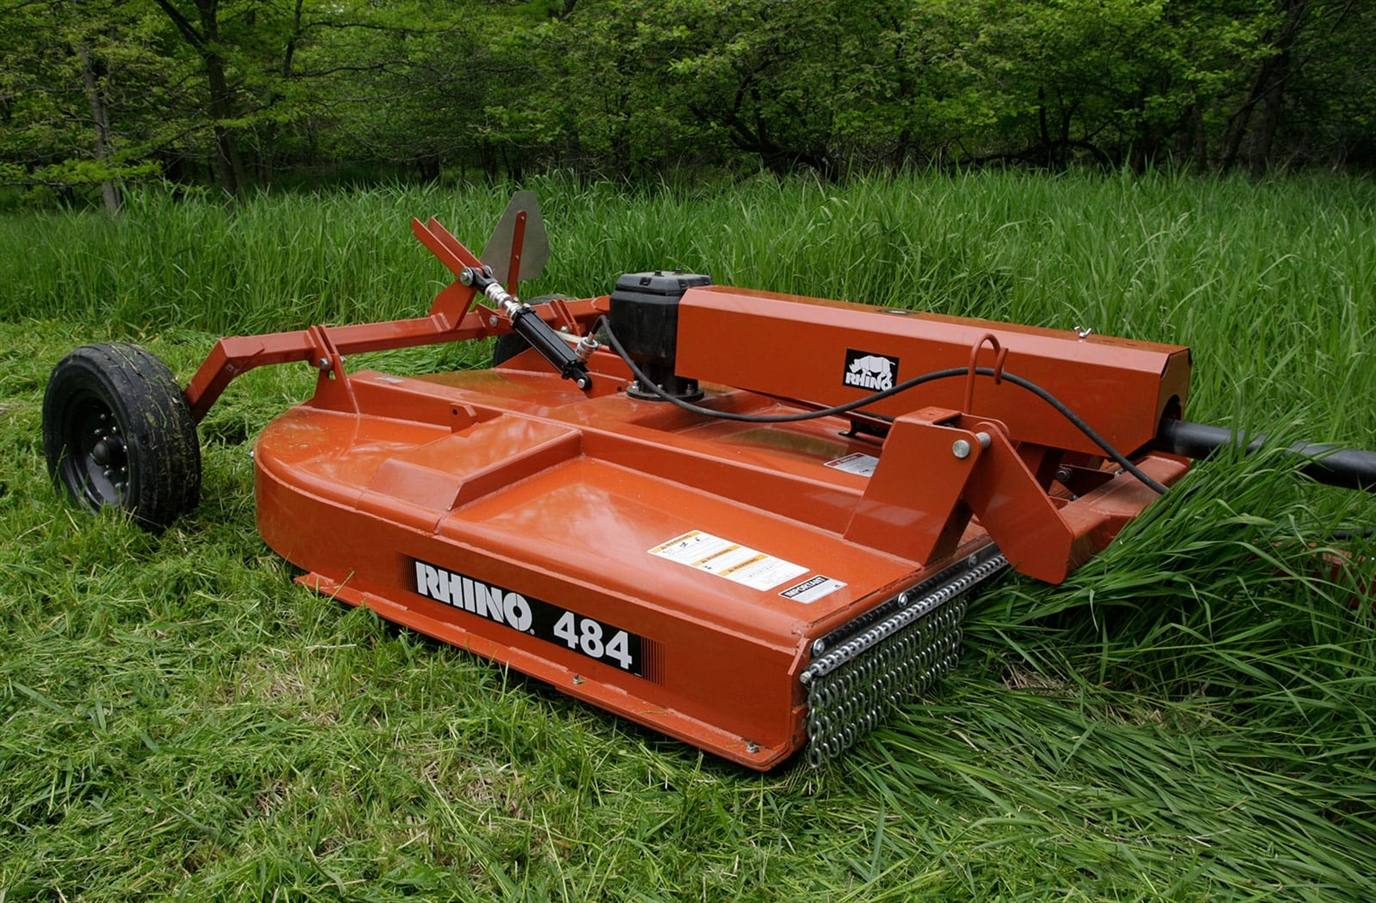 2019 RhinoAg 472 for sale in Newtown, PA  R & S Equipment